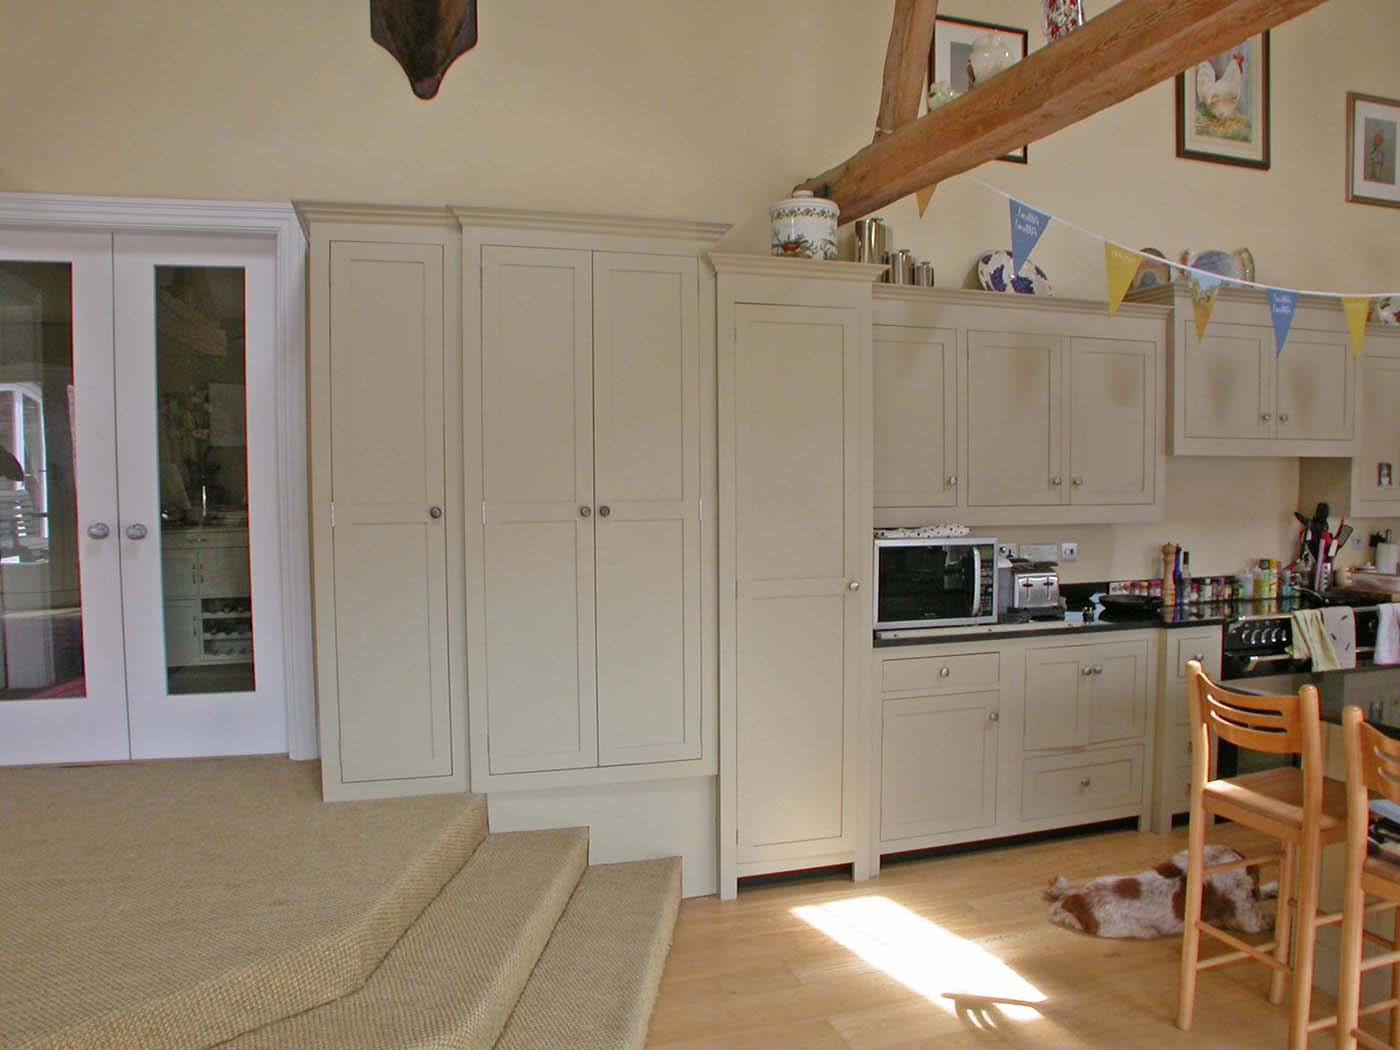 Shot of kitchen cabinets showing new cabinets snuggly fitted to steps